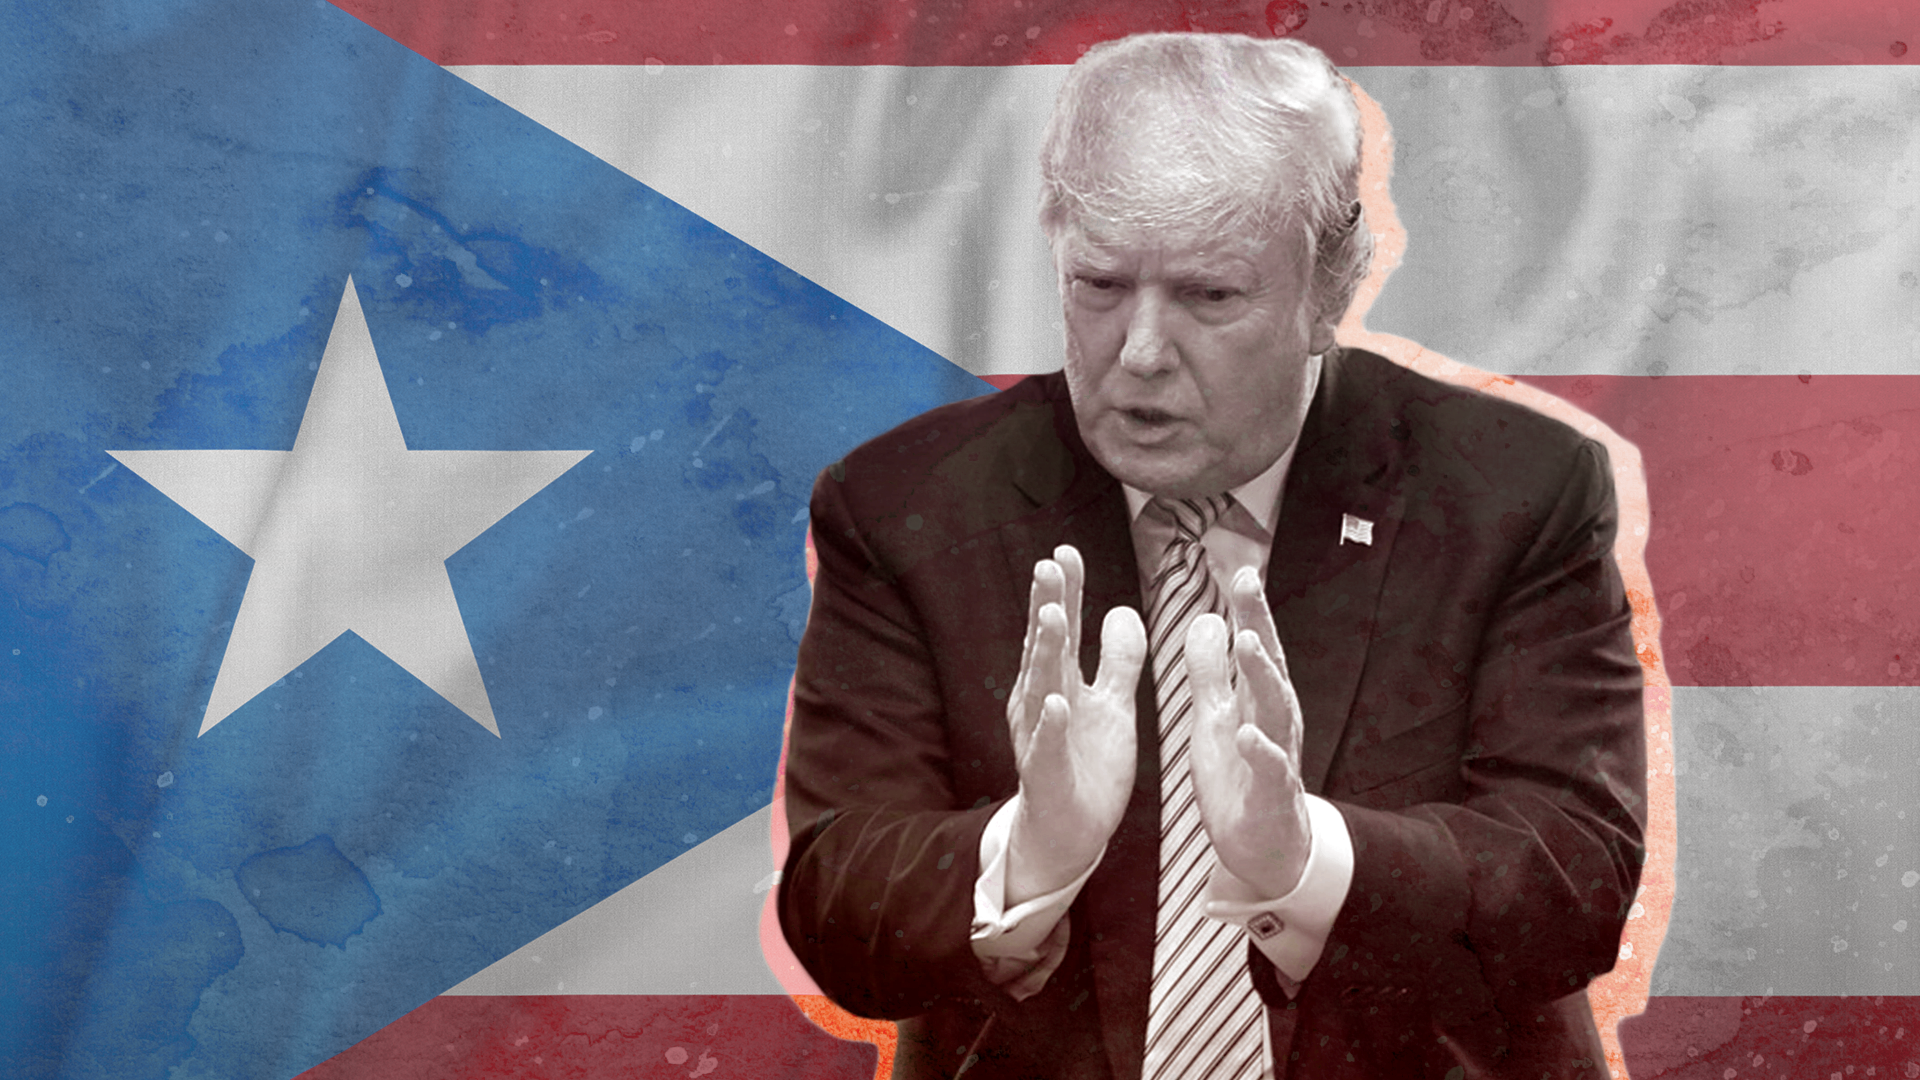 Trump Allegedly Asked If He Could Sell Puerto Rico Instead Of Investing In The Island's Future